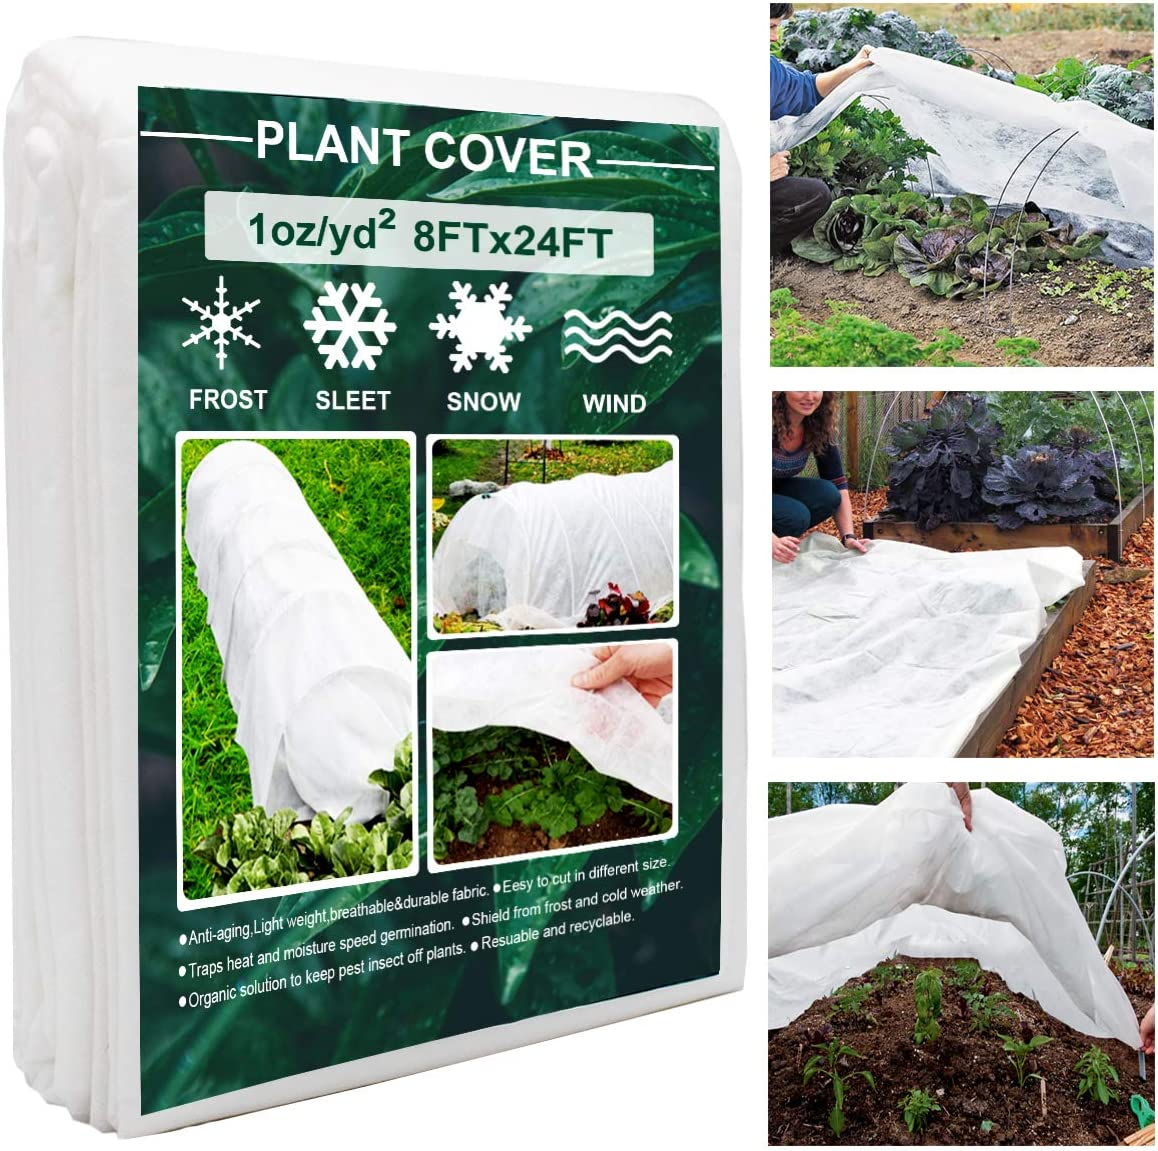 Plant Covers, 8Ft x 24Ft Reusable Floating Row Cover, 1oz Freeze Protection Plant Blankets for Cold Weather, Garden Winterize Cover for Winter Frost Protection, Thickened 1 oz Garden Quilt Cover